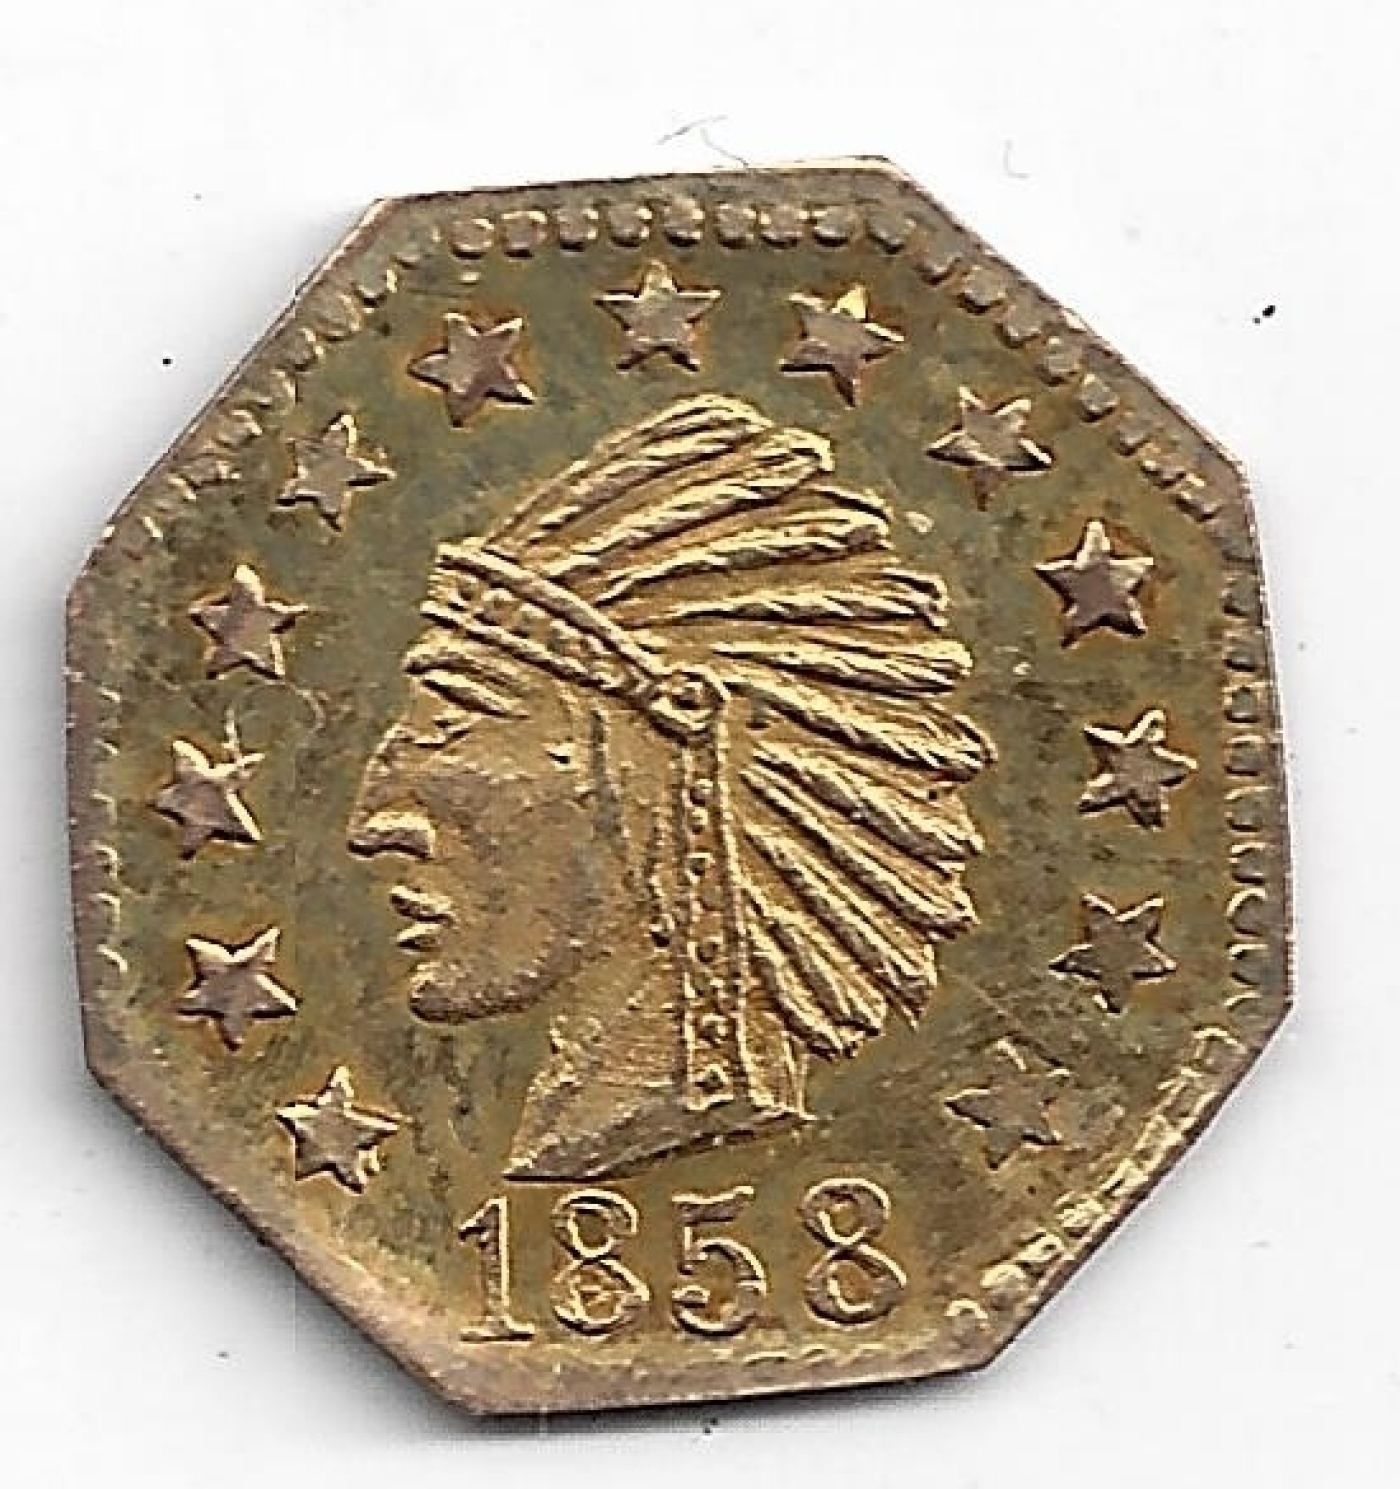 Counterfeit 1 4 California Gold 1858 Counterfeits United States Of America Coin 36378